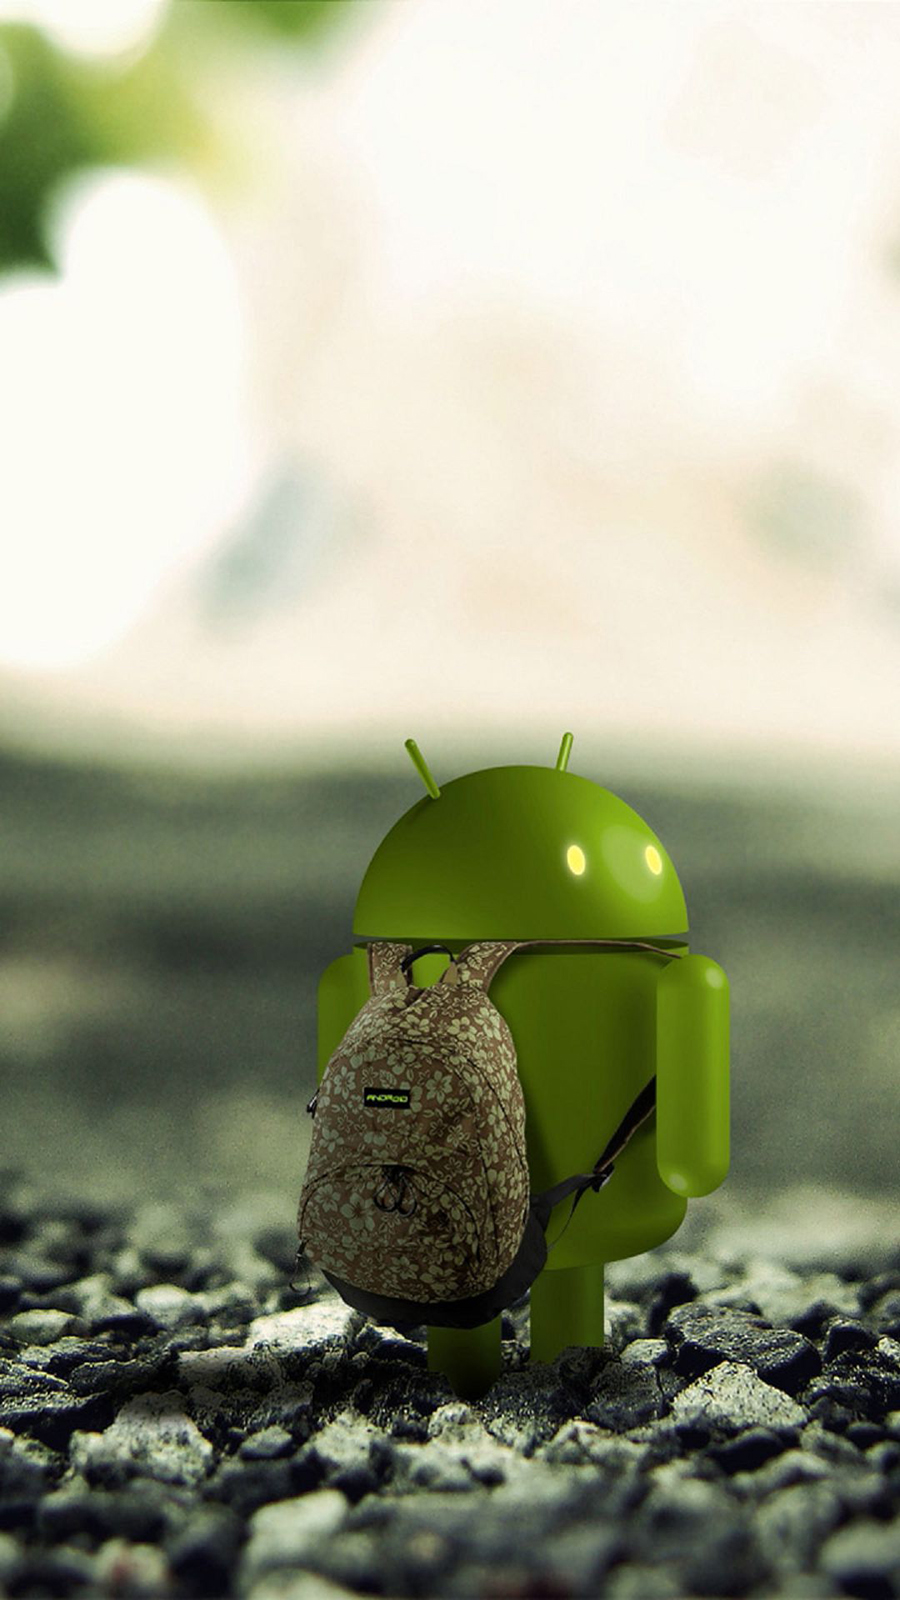 Android Robot HD Wallpapers Free Download